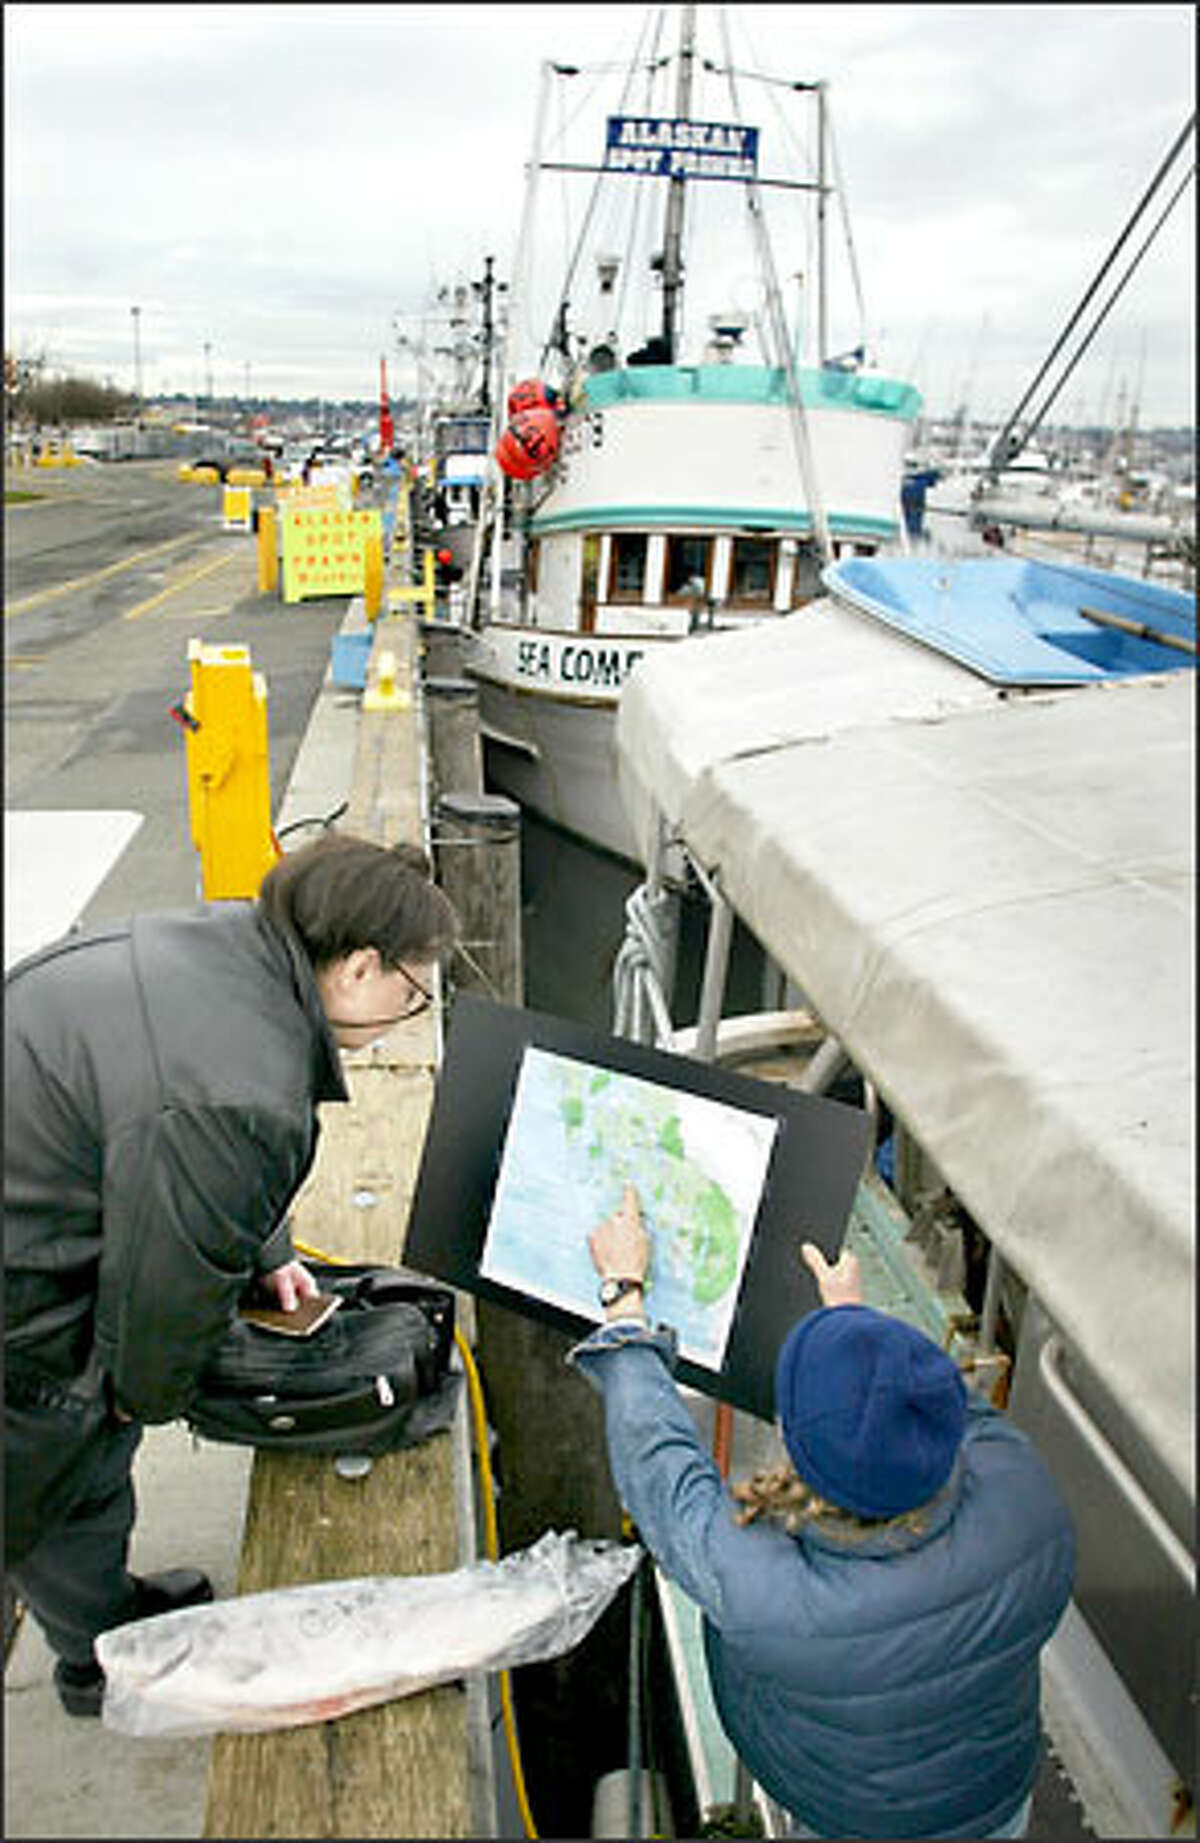 Pete Knutson shows Dee Salvino, left, the fishing grounds he harvested.